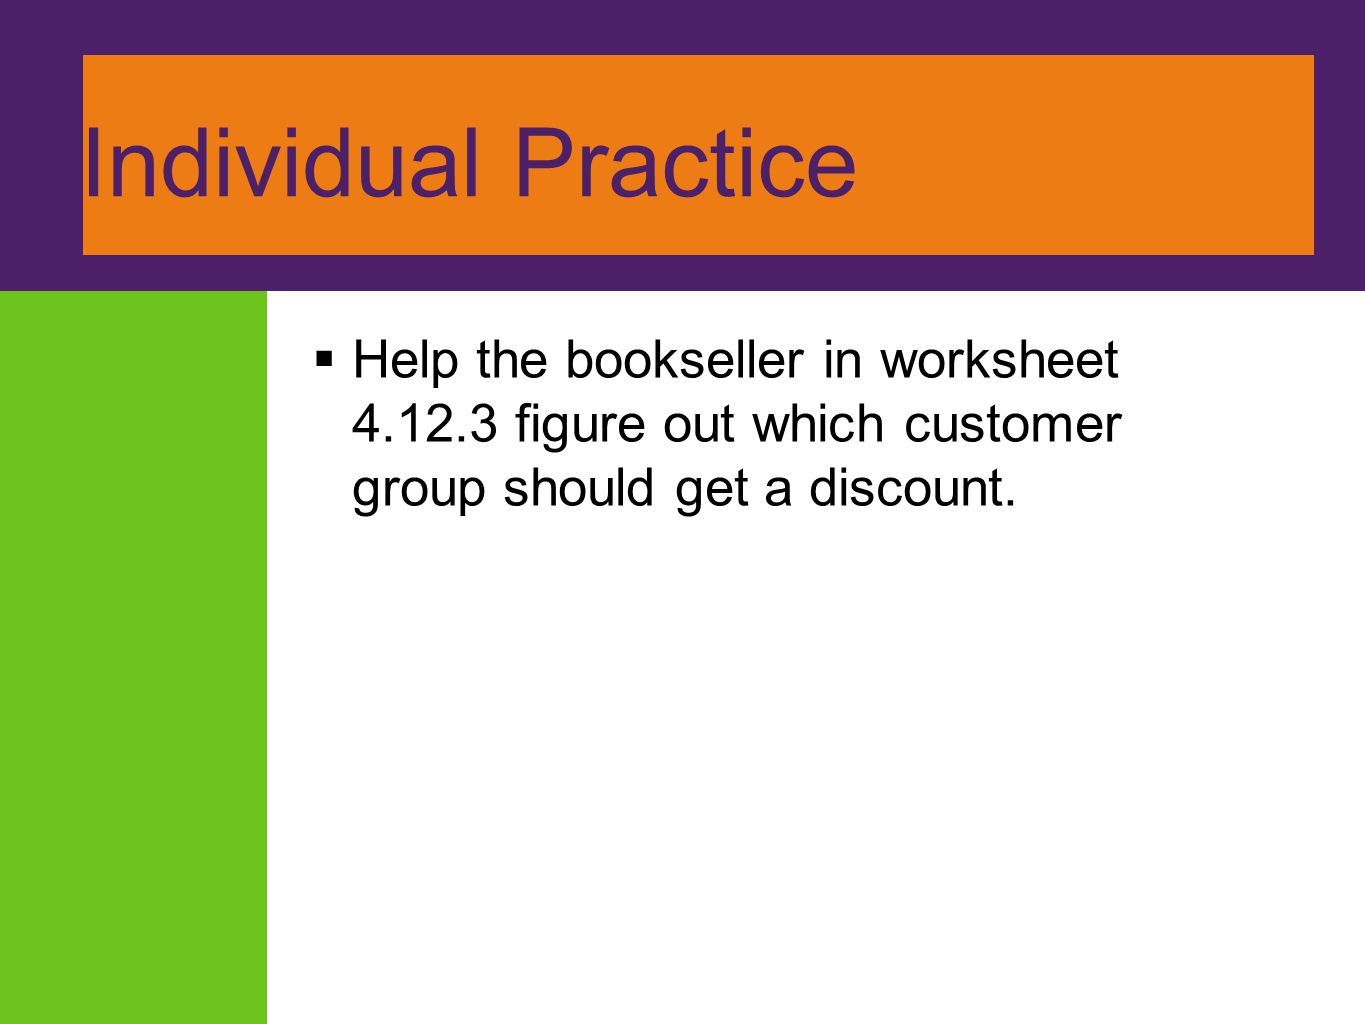 Individual Practice Help the bookseller in worksheet 4.12.3 figure out which customer group should get a discount.